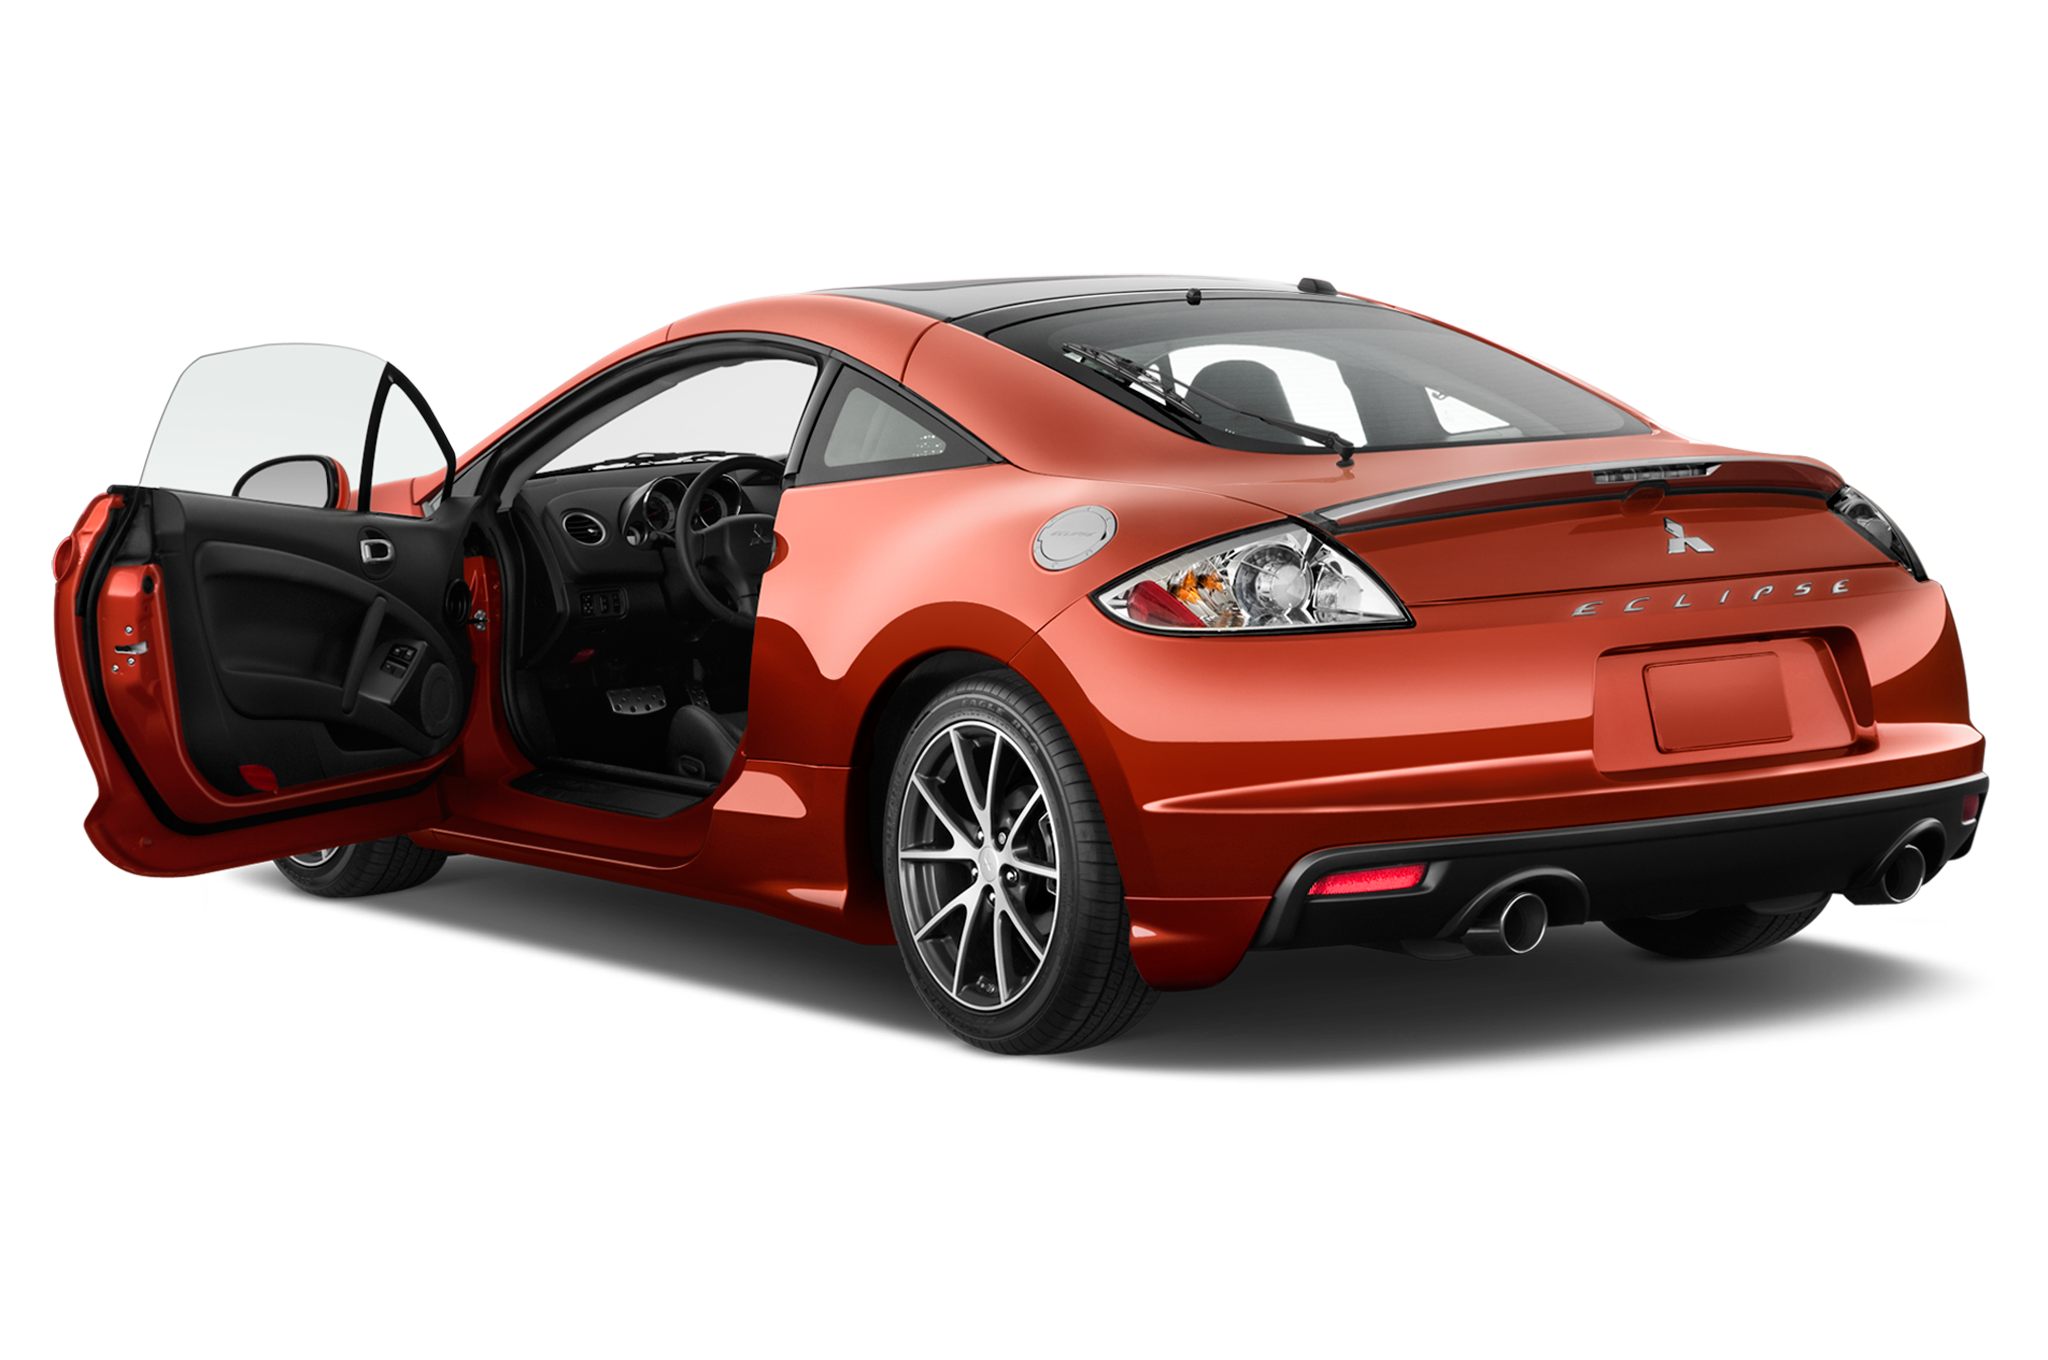 http://st.automobilemag.com/uploads/sites/10/2015/11/2012-mitsubishi-eclipse-gs-auto-coupe-doors.png